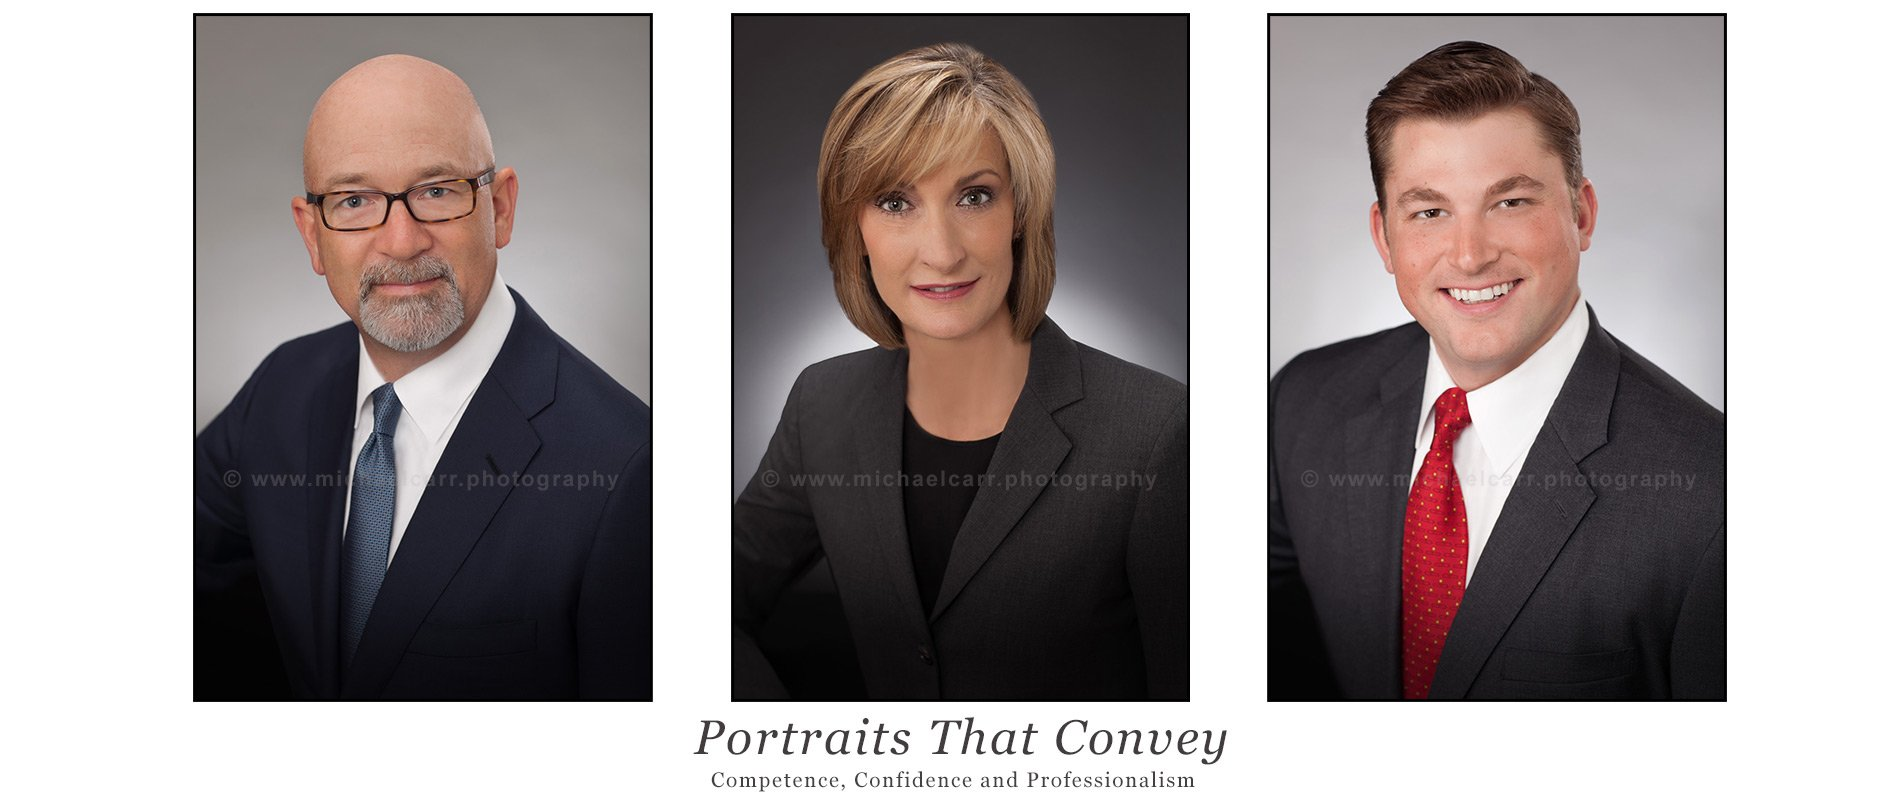 Corporate Portraits for LinkedIn